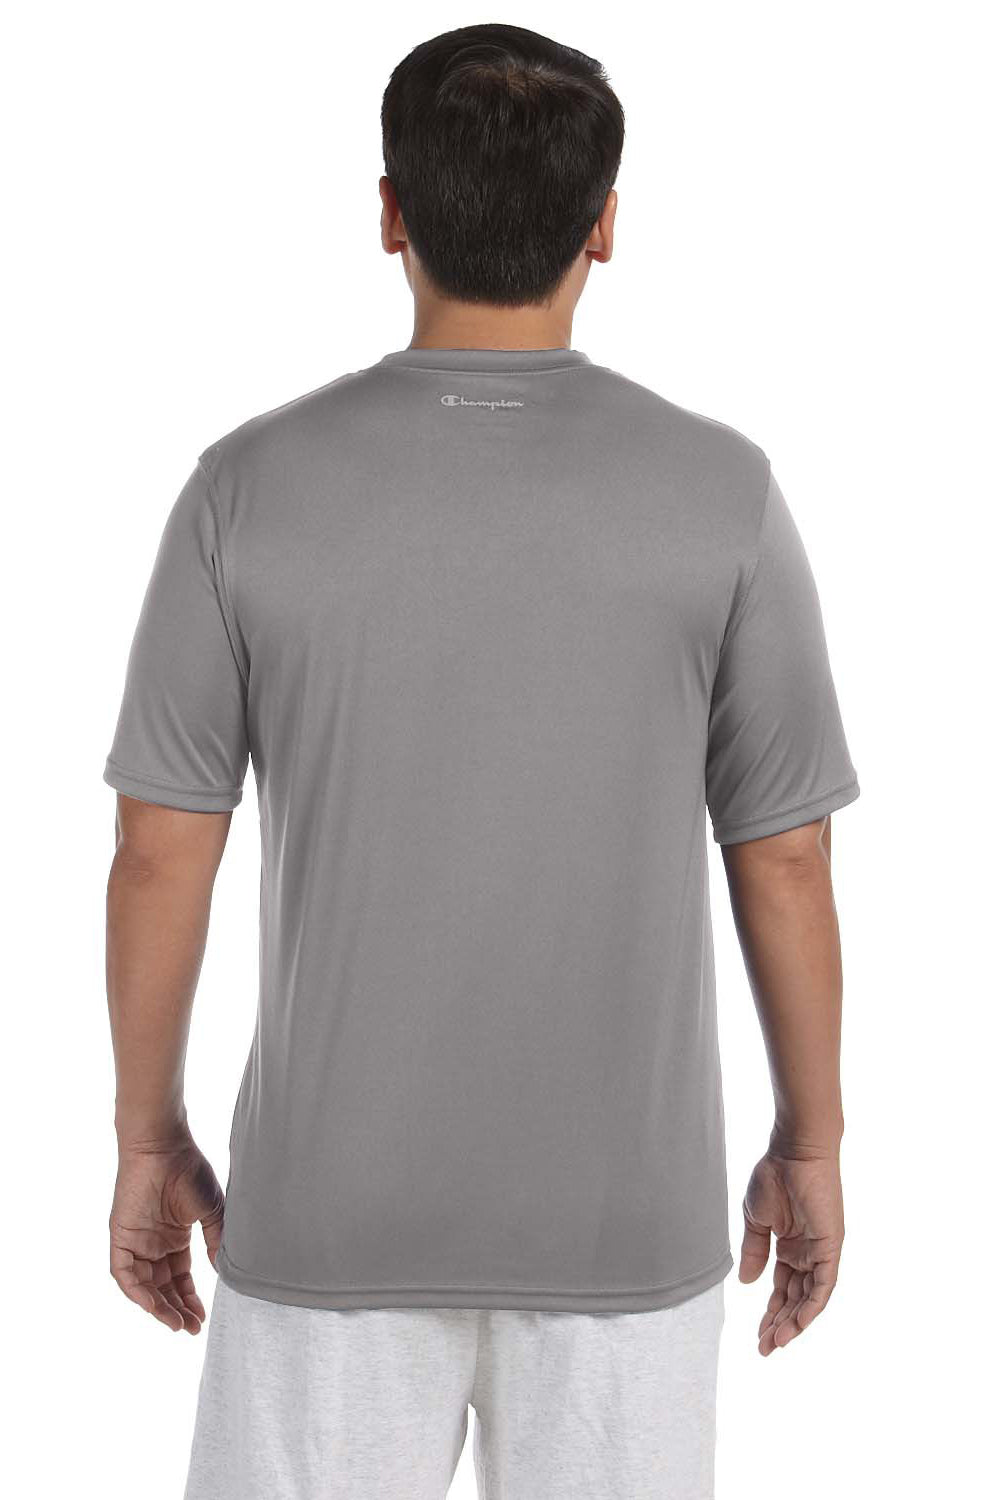 Champion CW22 Mens Double Dry Moisture Wicking Short Sleeve Crewneck T-Shirt Stone Grey Back